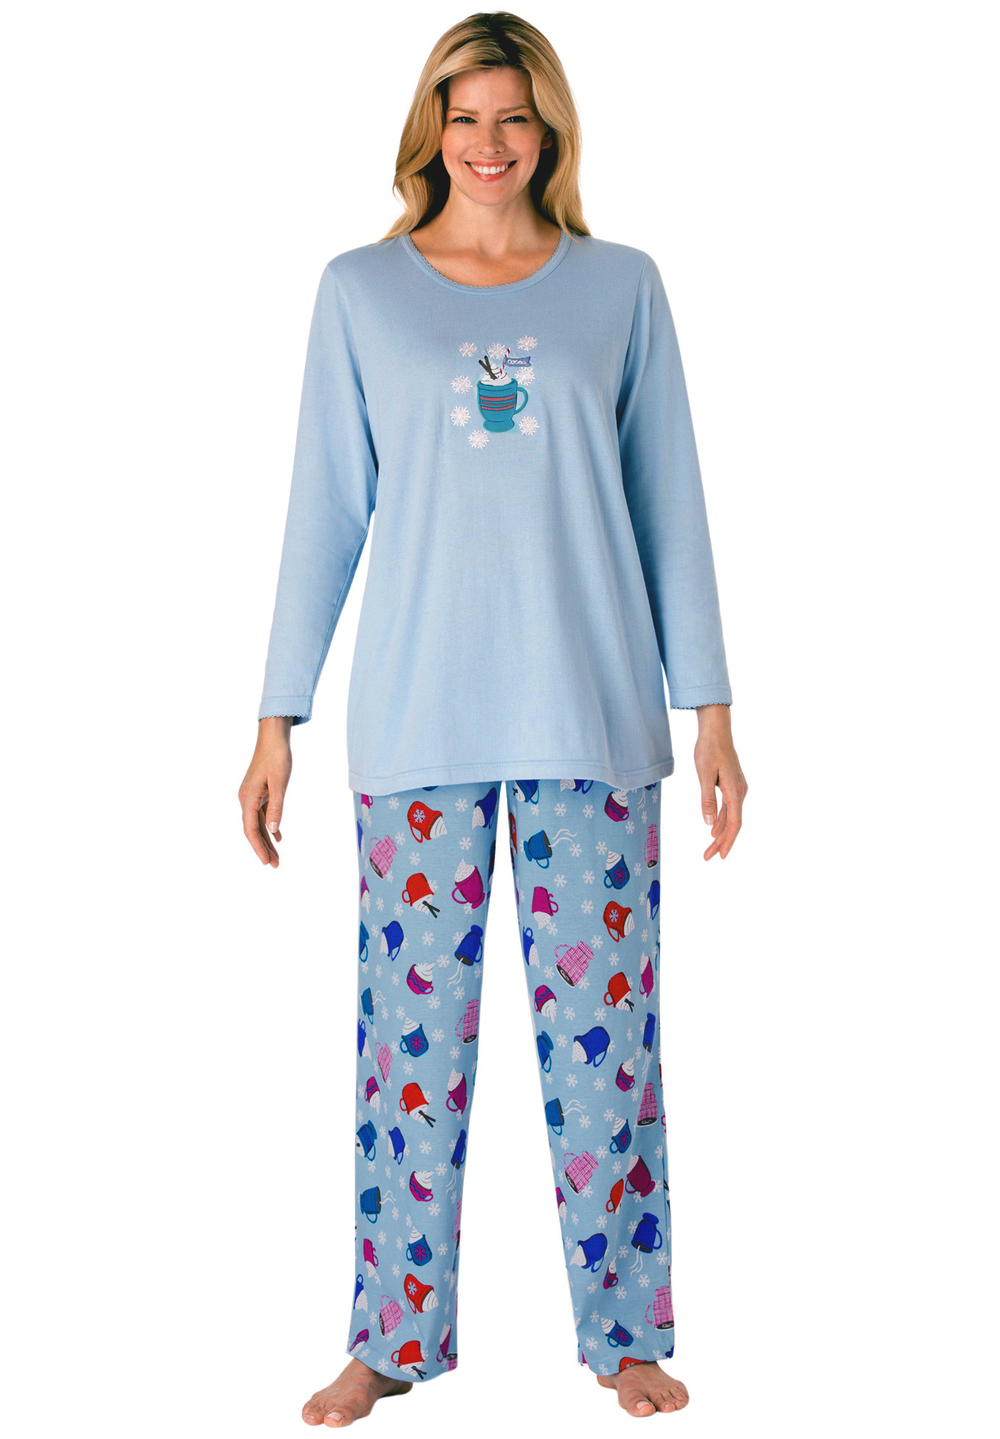 Womens cotton pajamas are available in cool and breezy knits and cozy fabrics for every season. Browse our flannel PJs and find the perfect set for cooler weather. Cotton Knit Ski Pajamas for Women. Cotton Knit Ski Pajamas for Women - -.